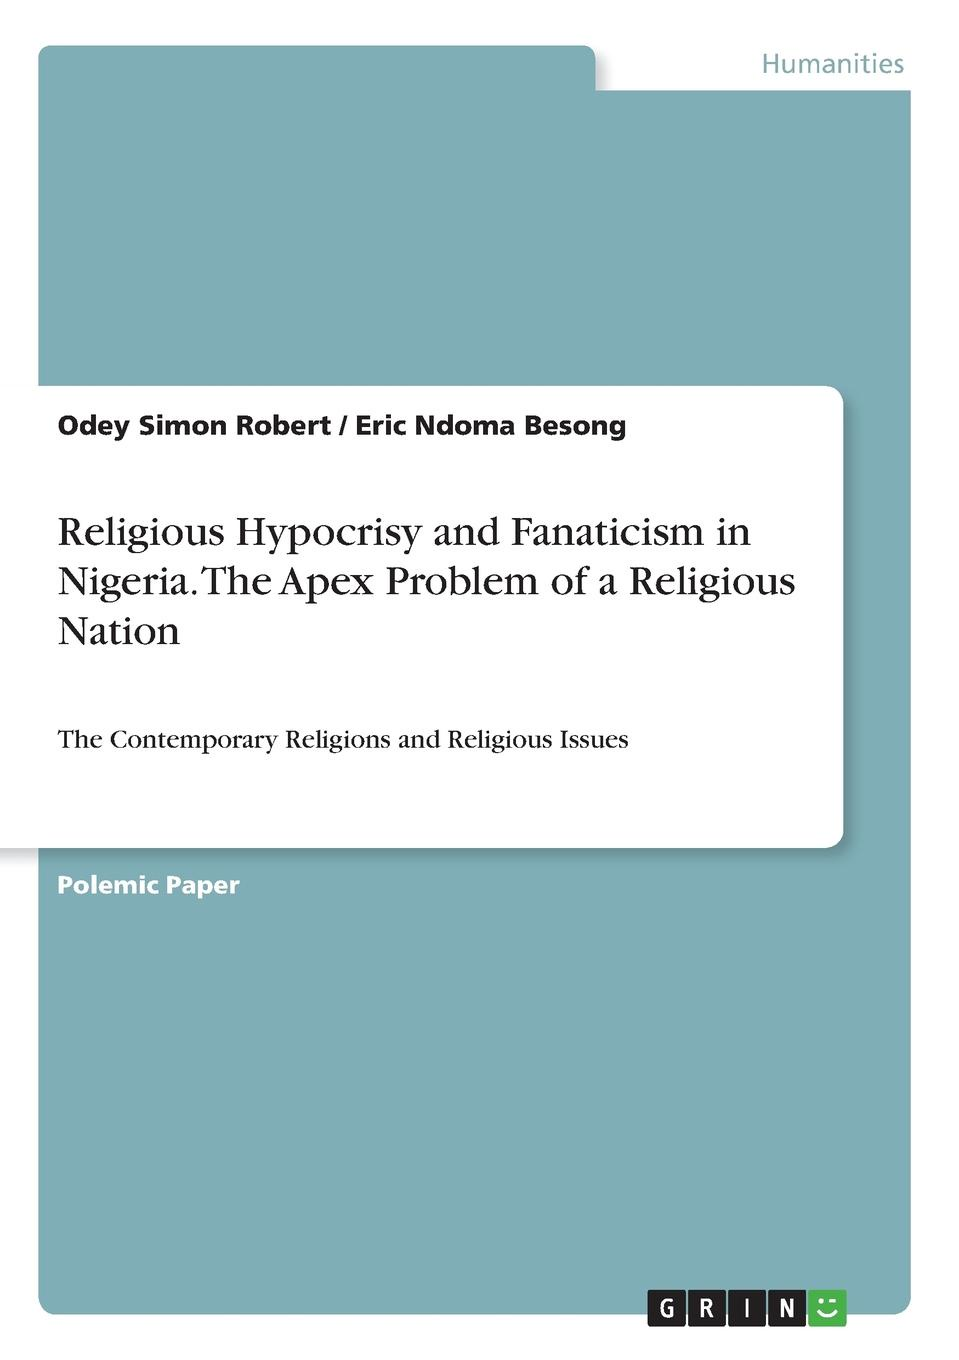 Odey Simon Robert, Eric Ndoma Besong Religious Hypocrisy and Fanaticism in Nigeria. The Apex Problem of a Religious Nation the crisis of religious toleration in imperial russia